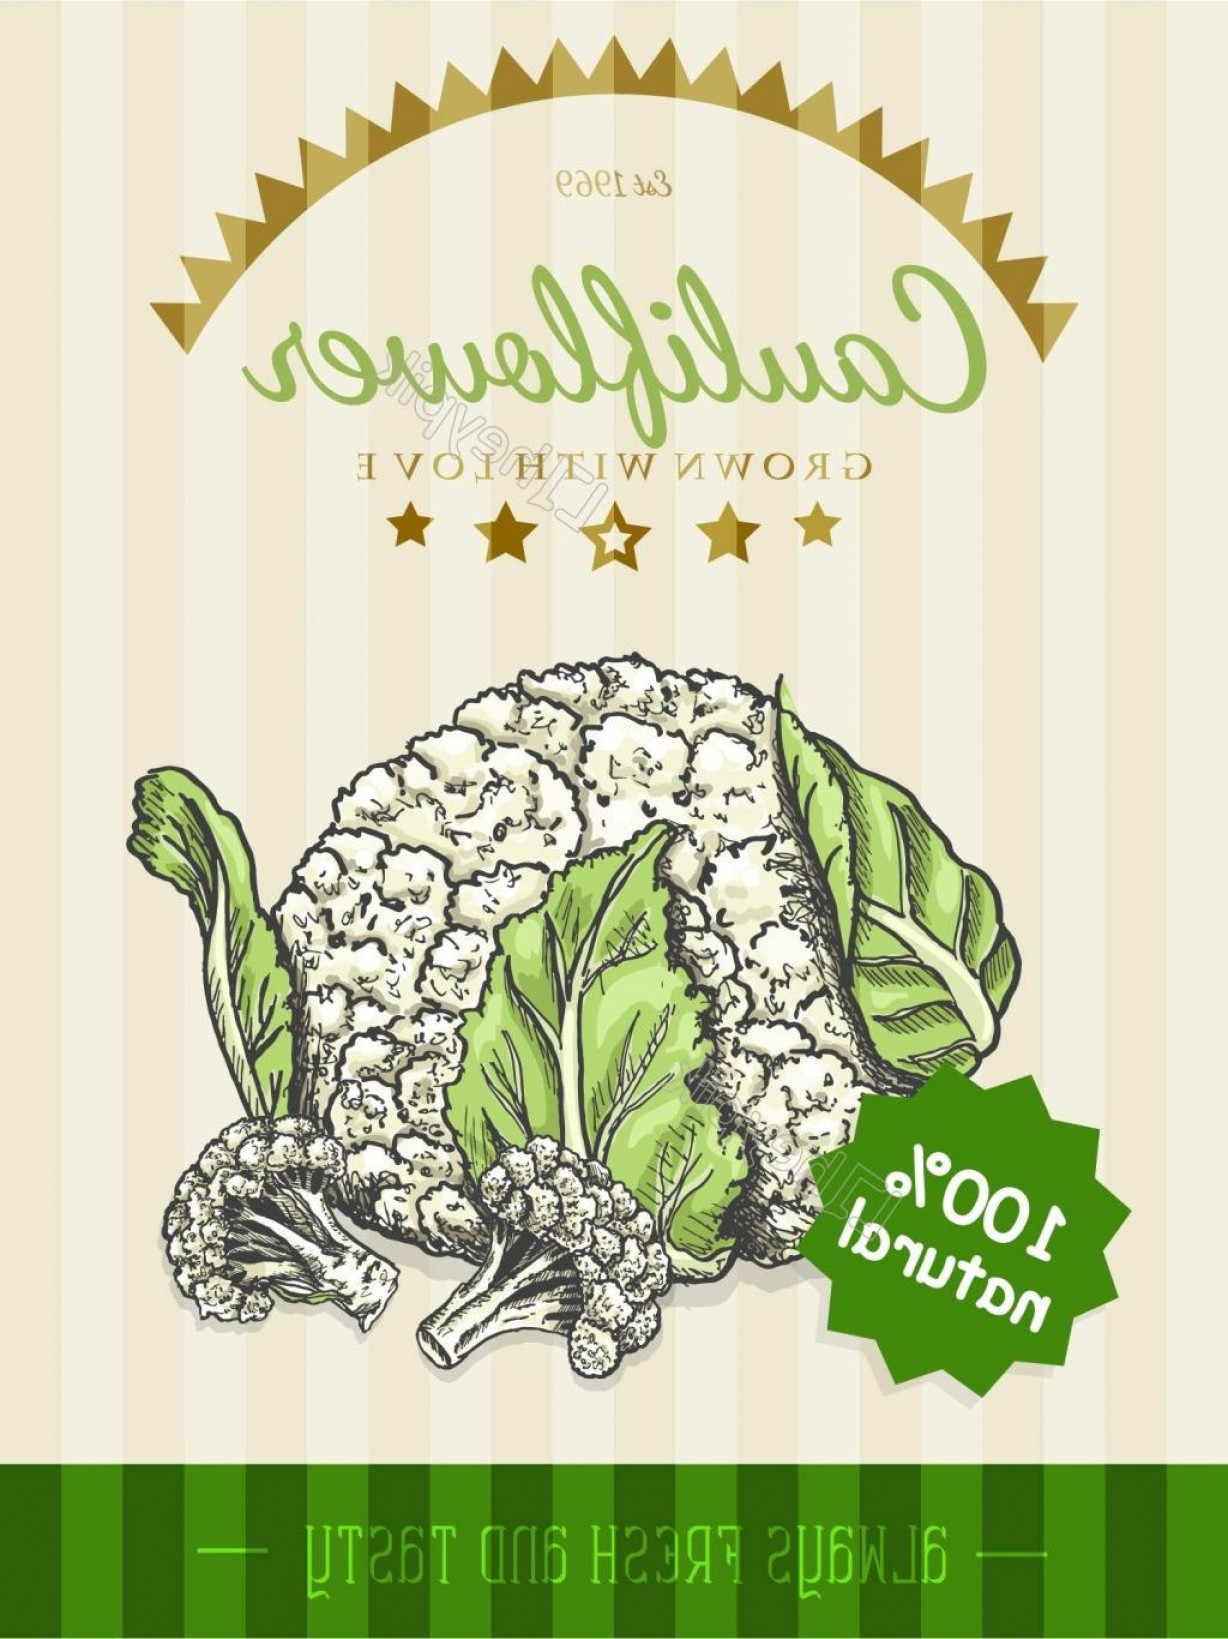 Vectores Para Descargar Gratis: Hand Painted Cauliflower Poster Vector Material To Download